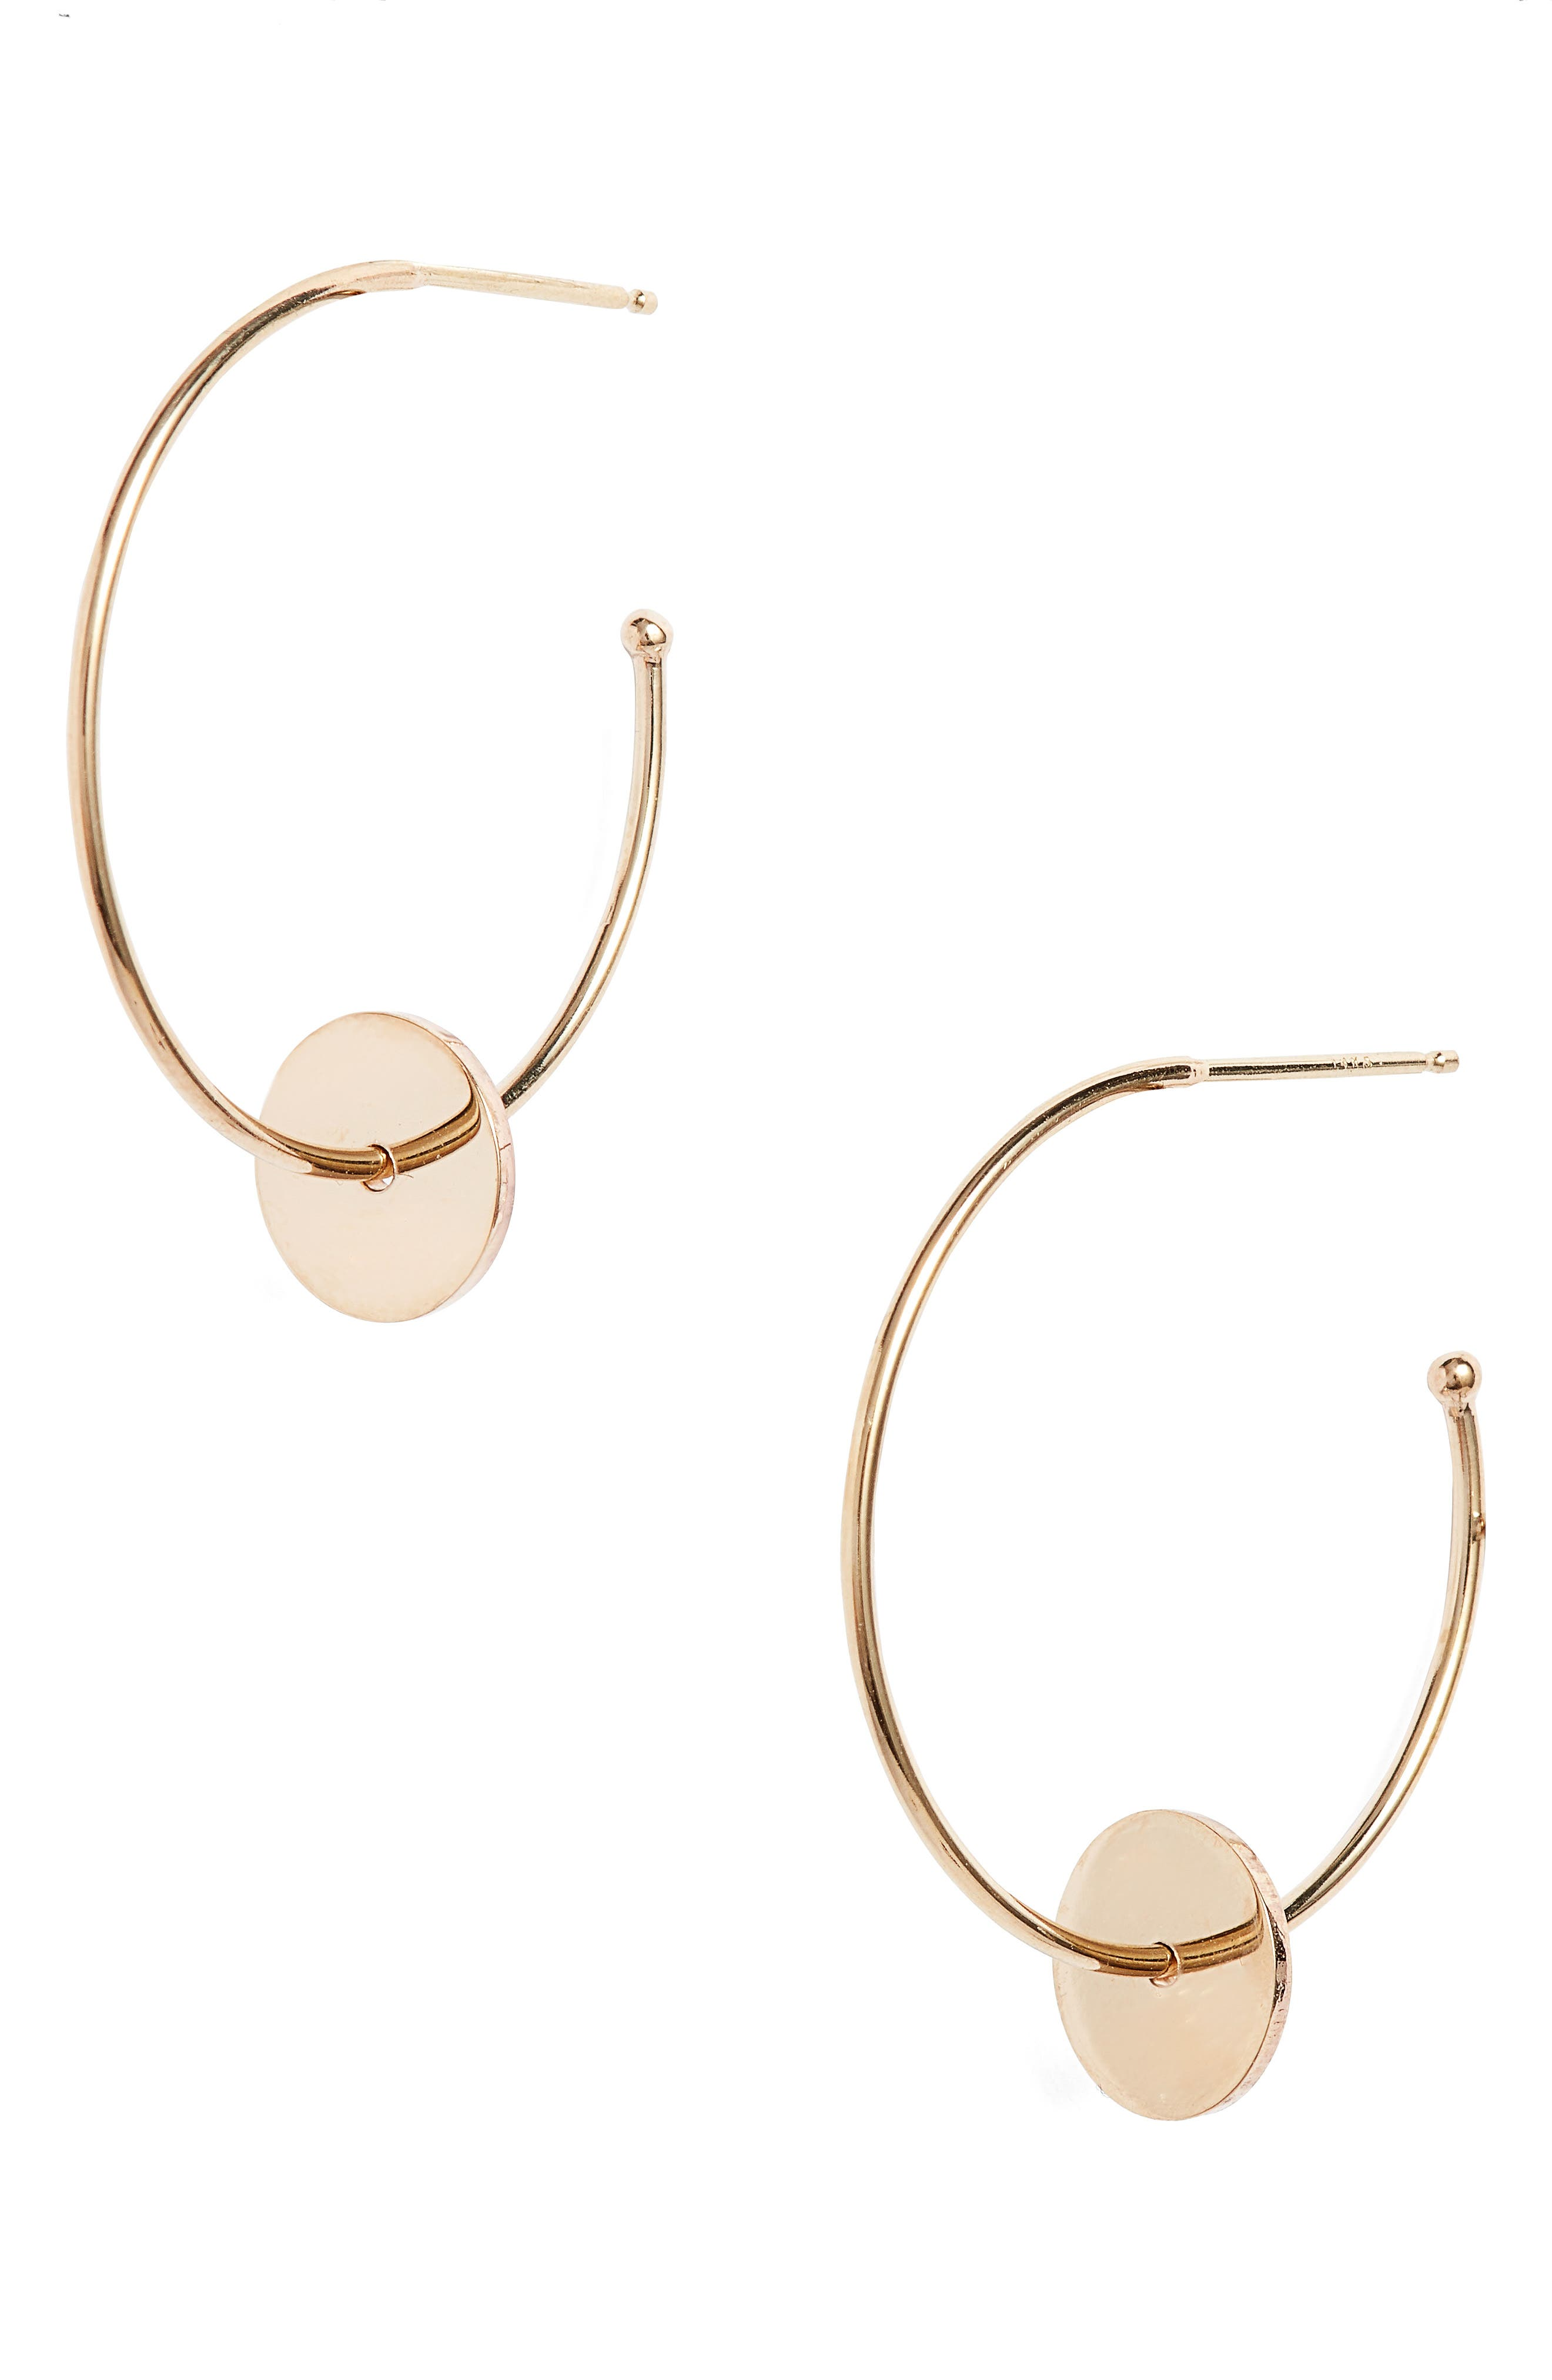 Washer Hoop Earrings,                         Main,                         color, Yellow Gold